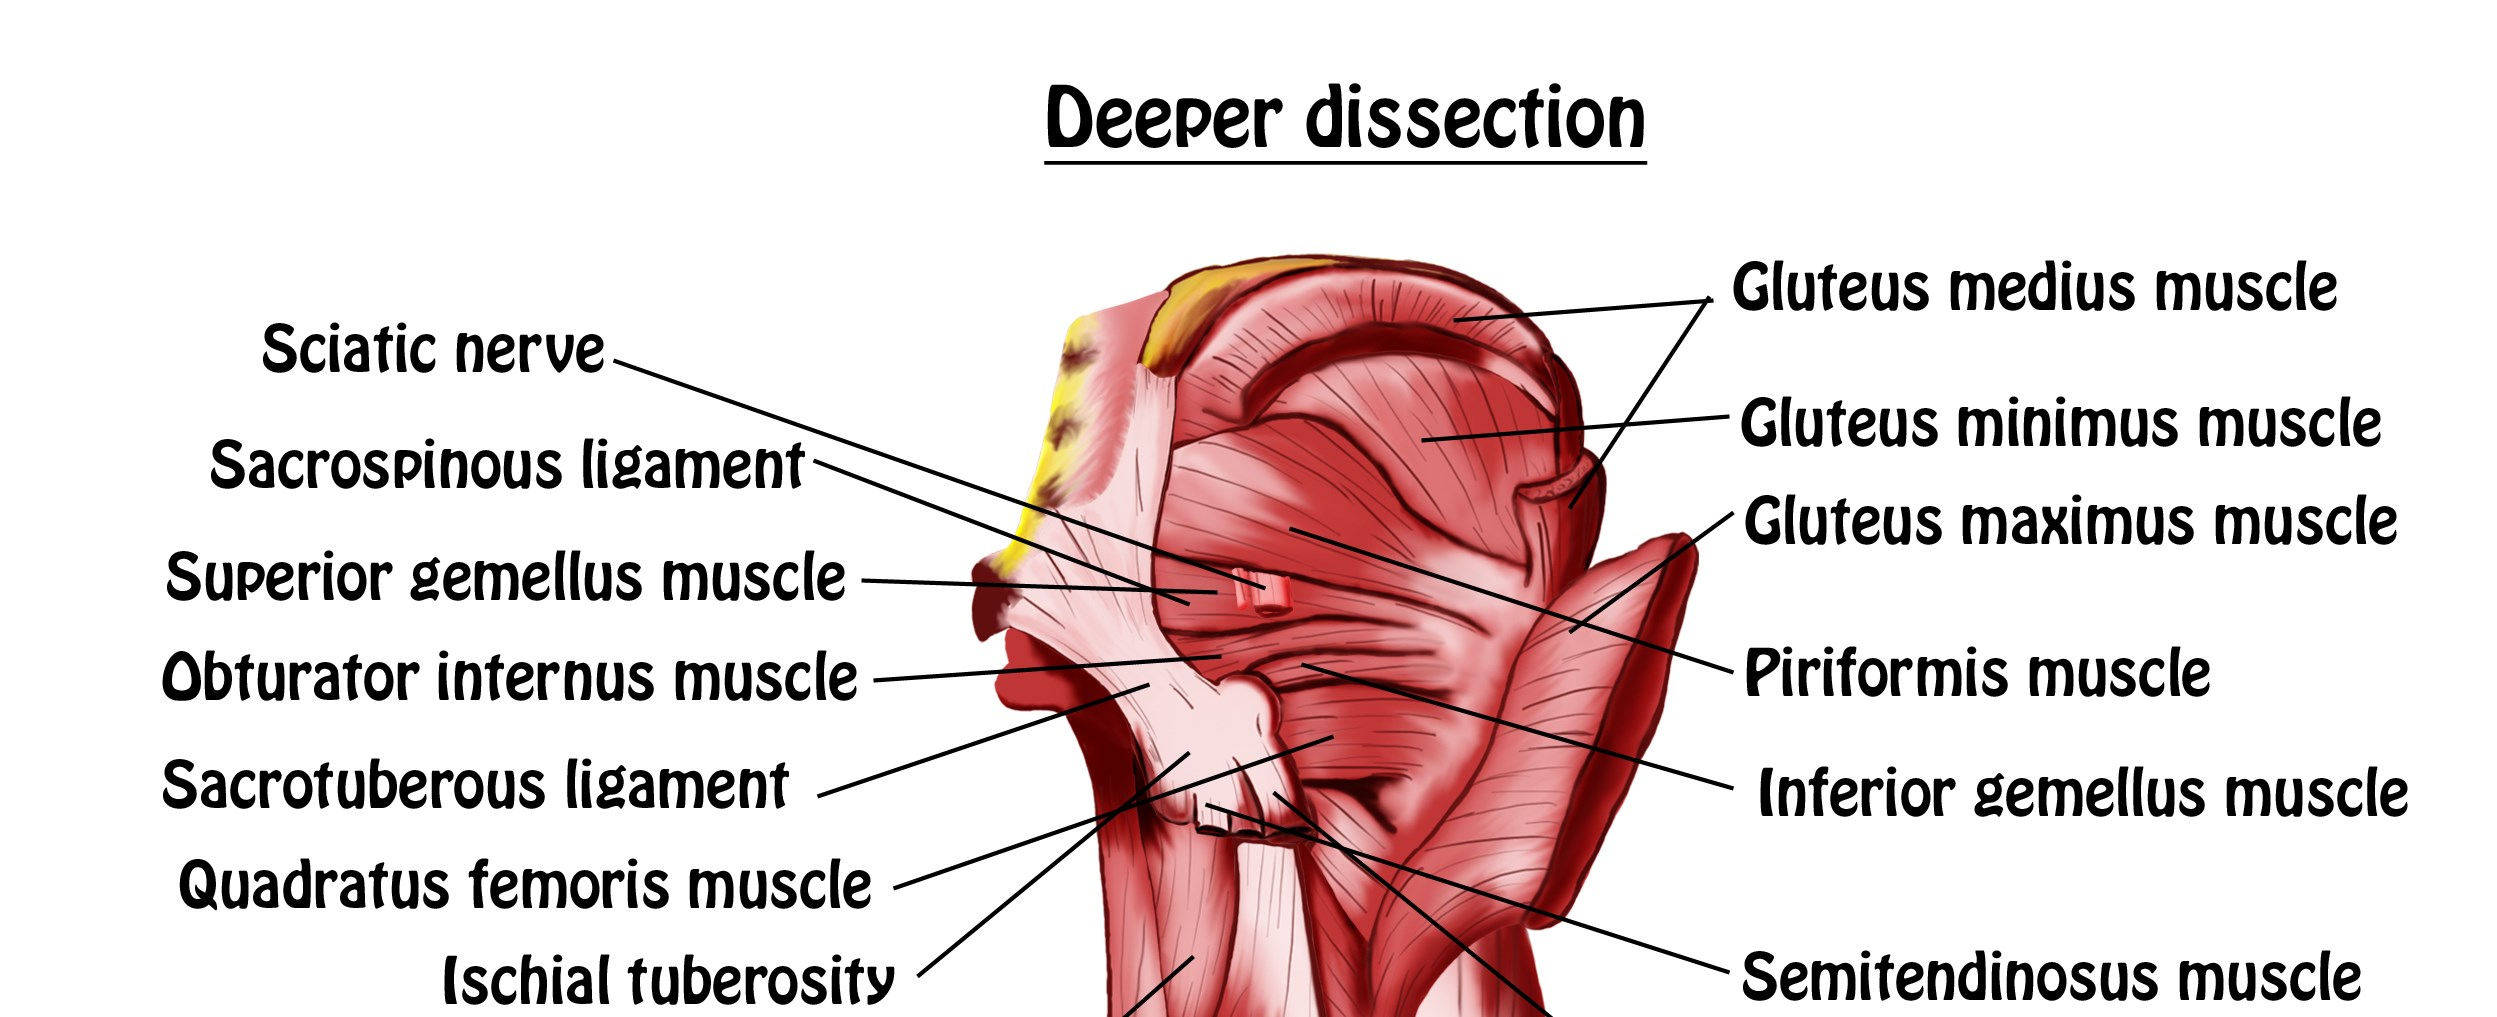 Muscles of Hip and Thigh - Deeper dissection view copy